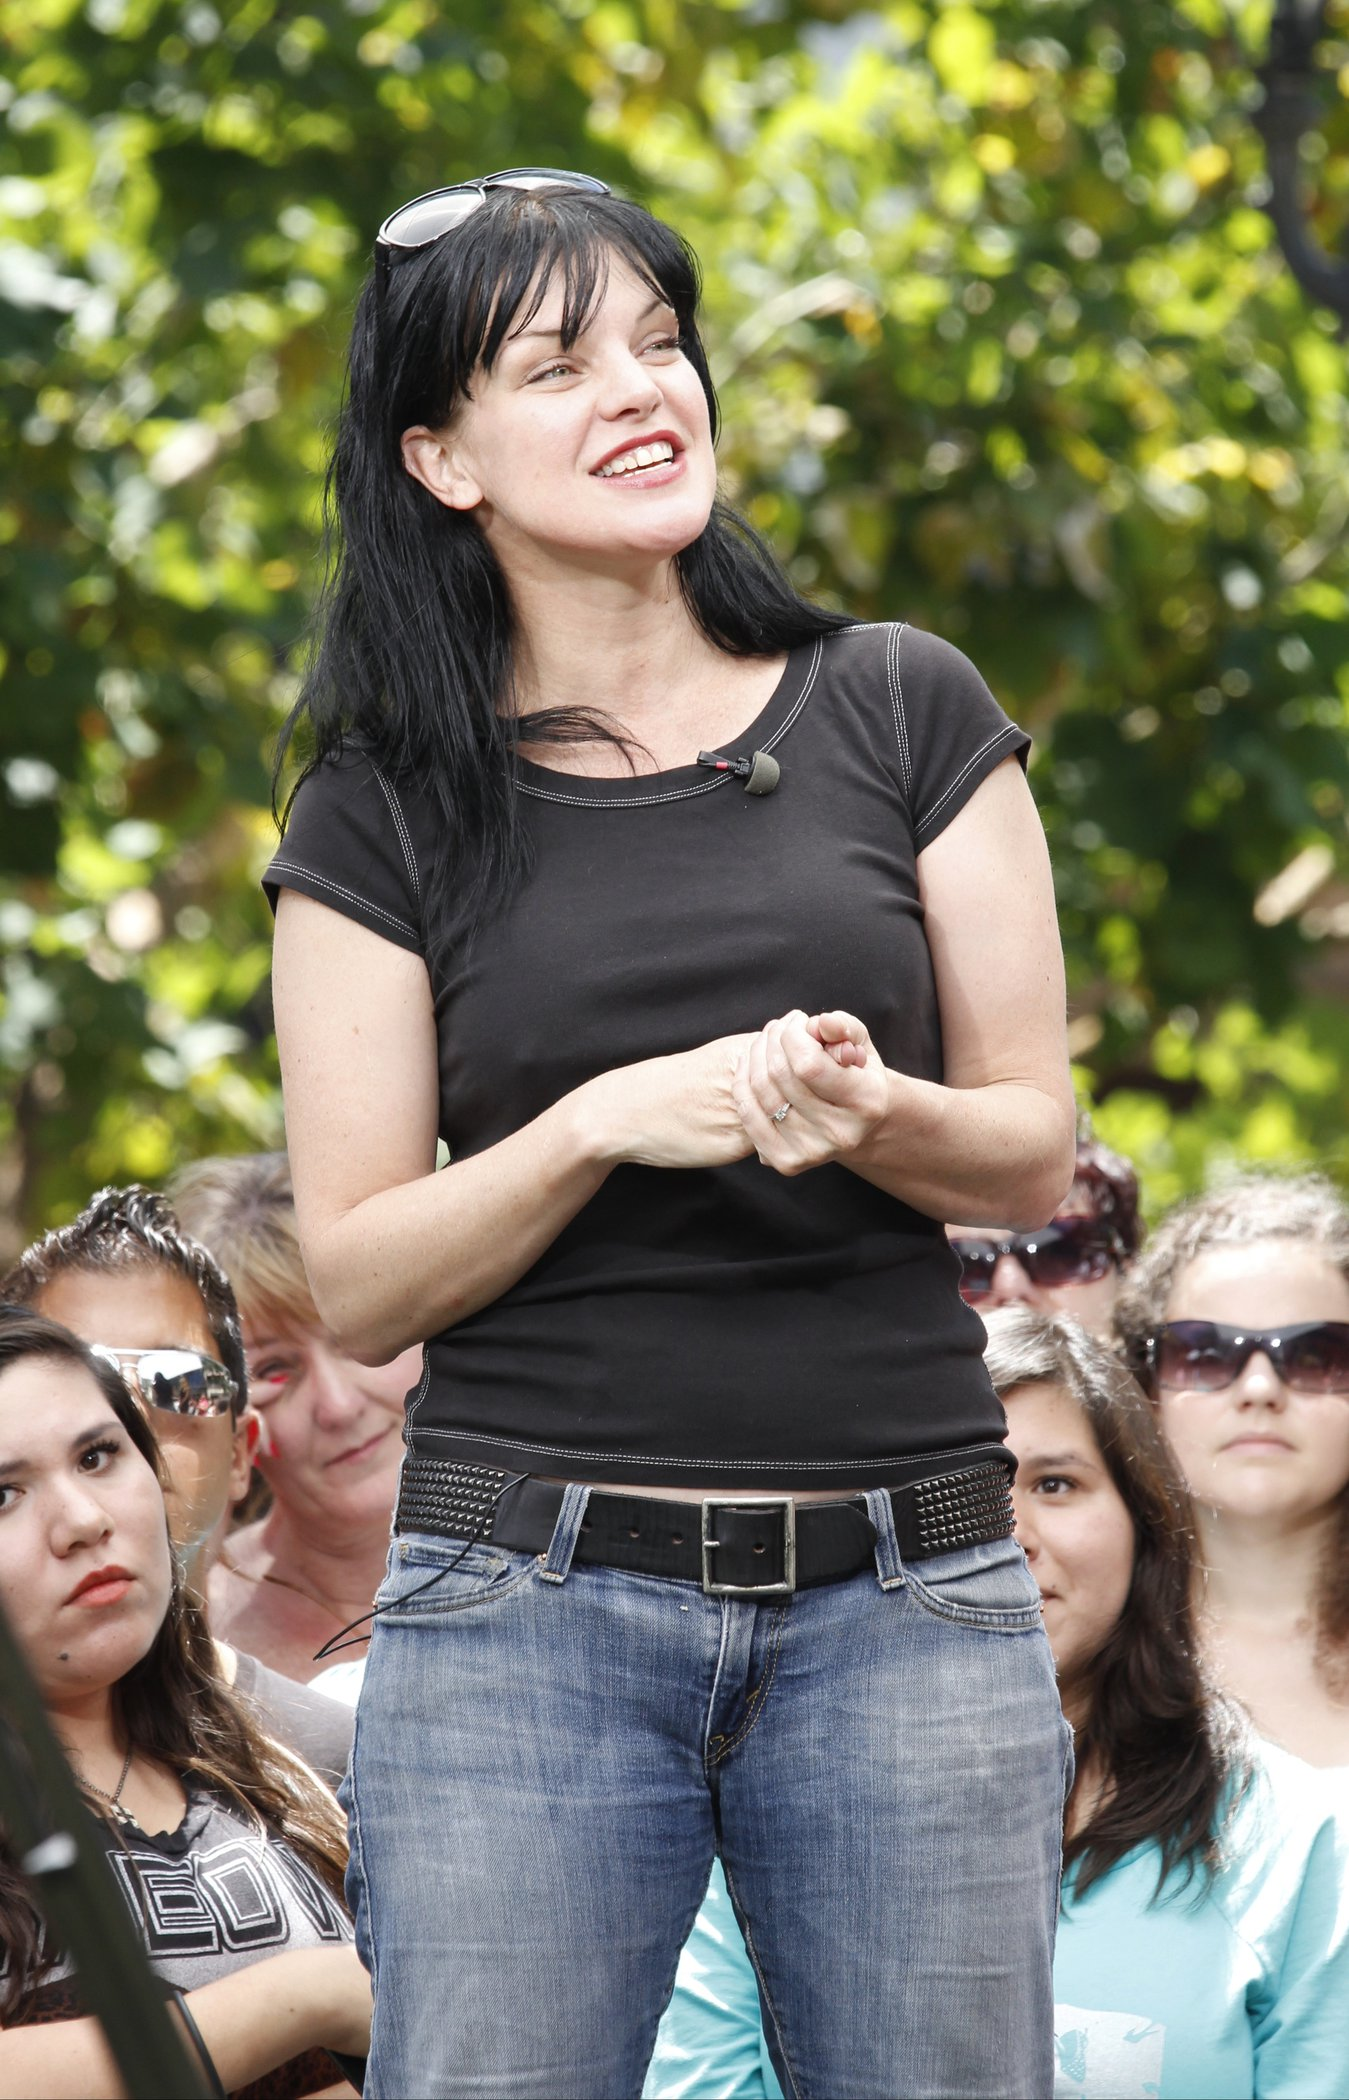 Pauley Perrette on the set of Extra in LA 5/28/13